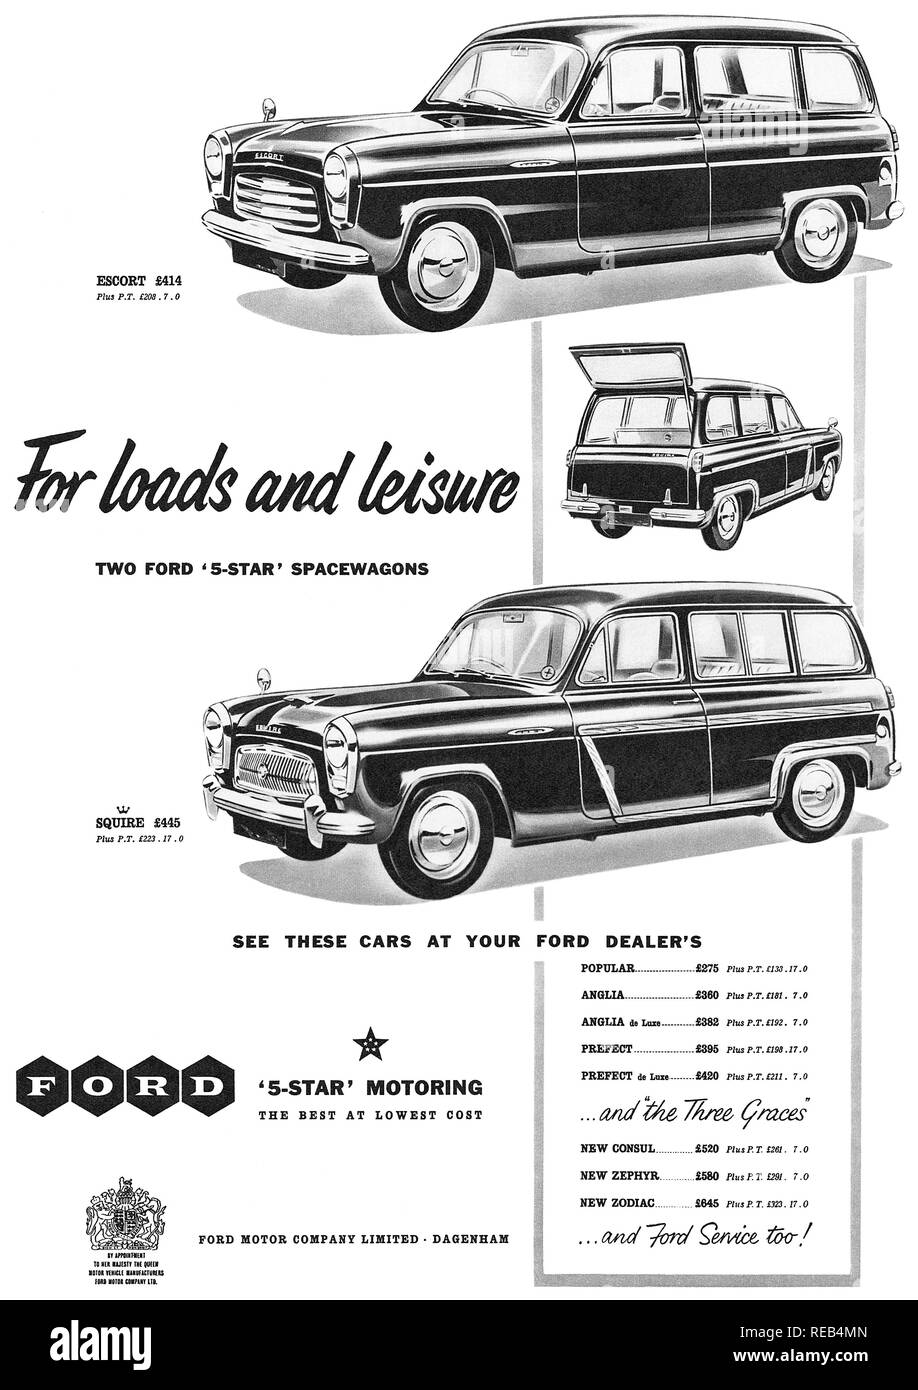 1956 British advertisement for Ford Spacewagons. - Stock Image